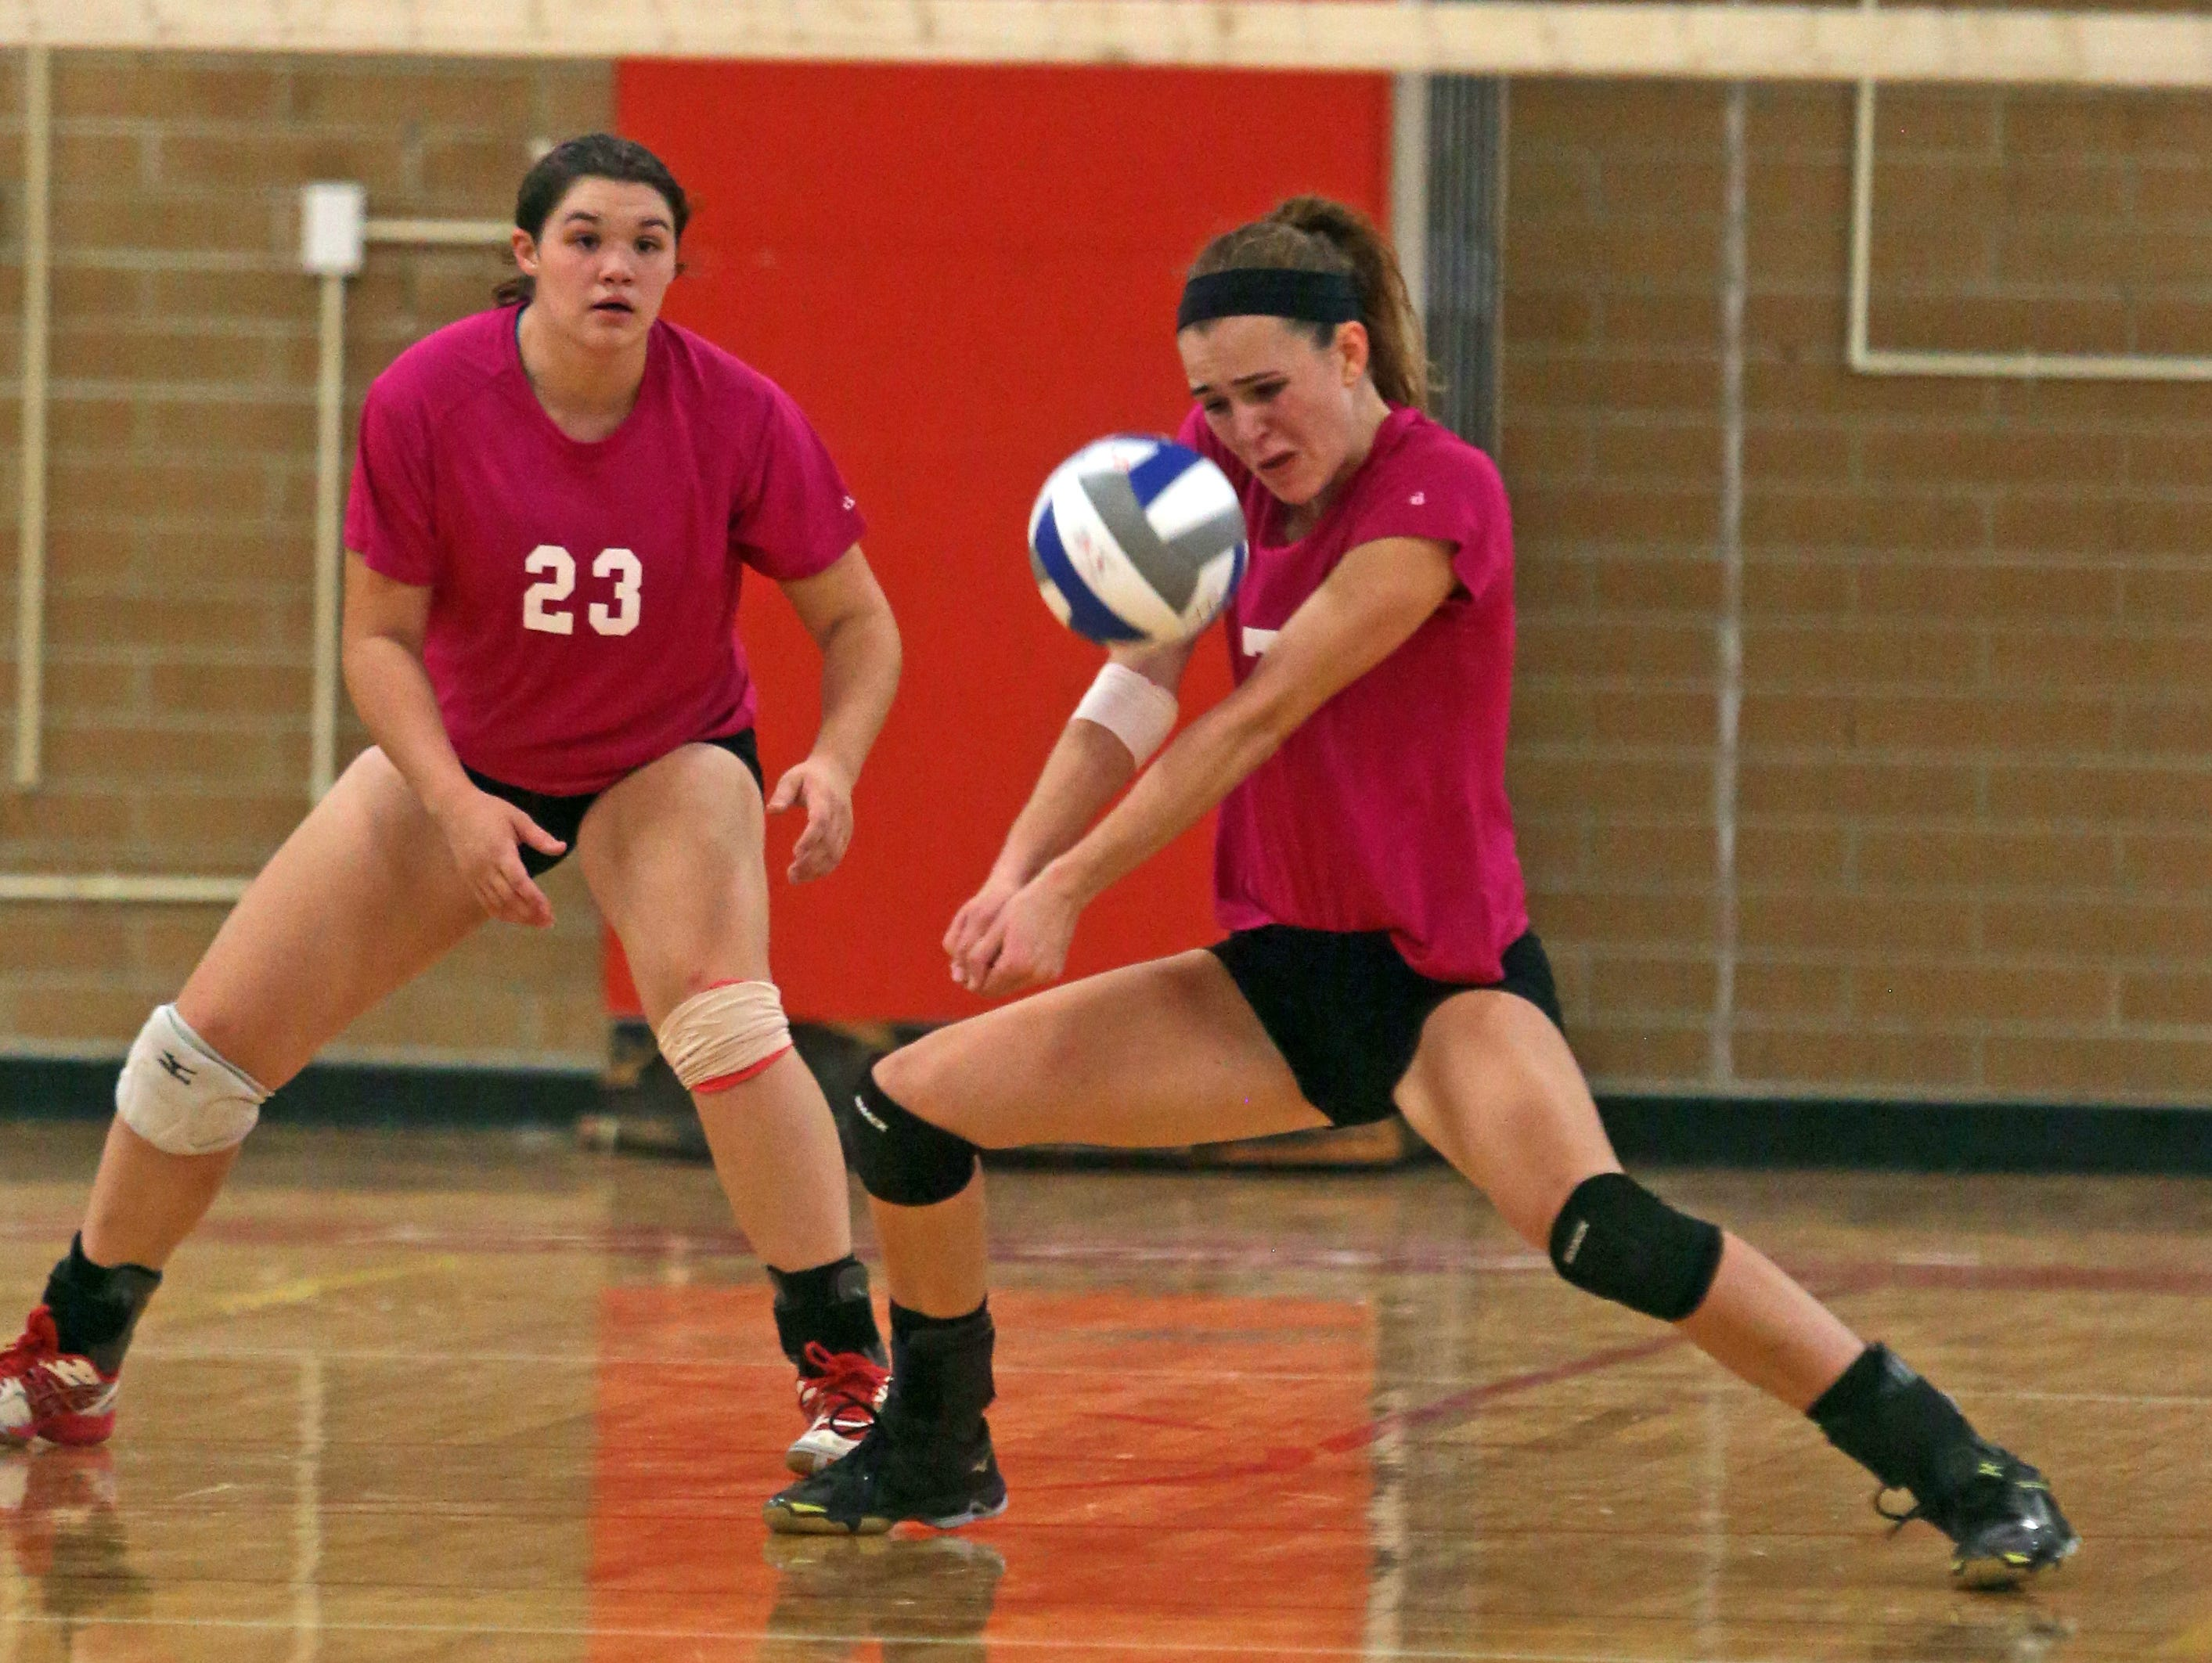 Suffern's Kristen Conway, left, tries to block a shot by North Rockland's Shannon Thomas during a varsity volleyball match at North Rockland High School Oct. 7, 2015. Suffern defeated North Rockland in five games.